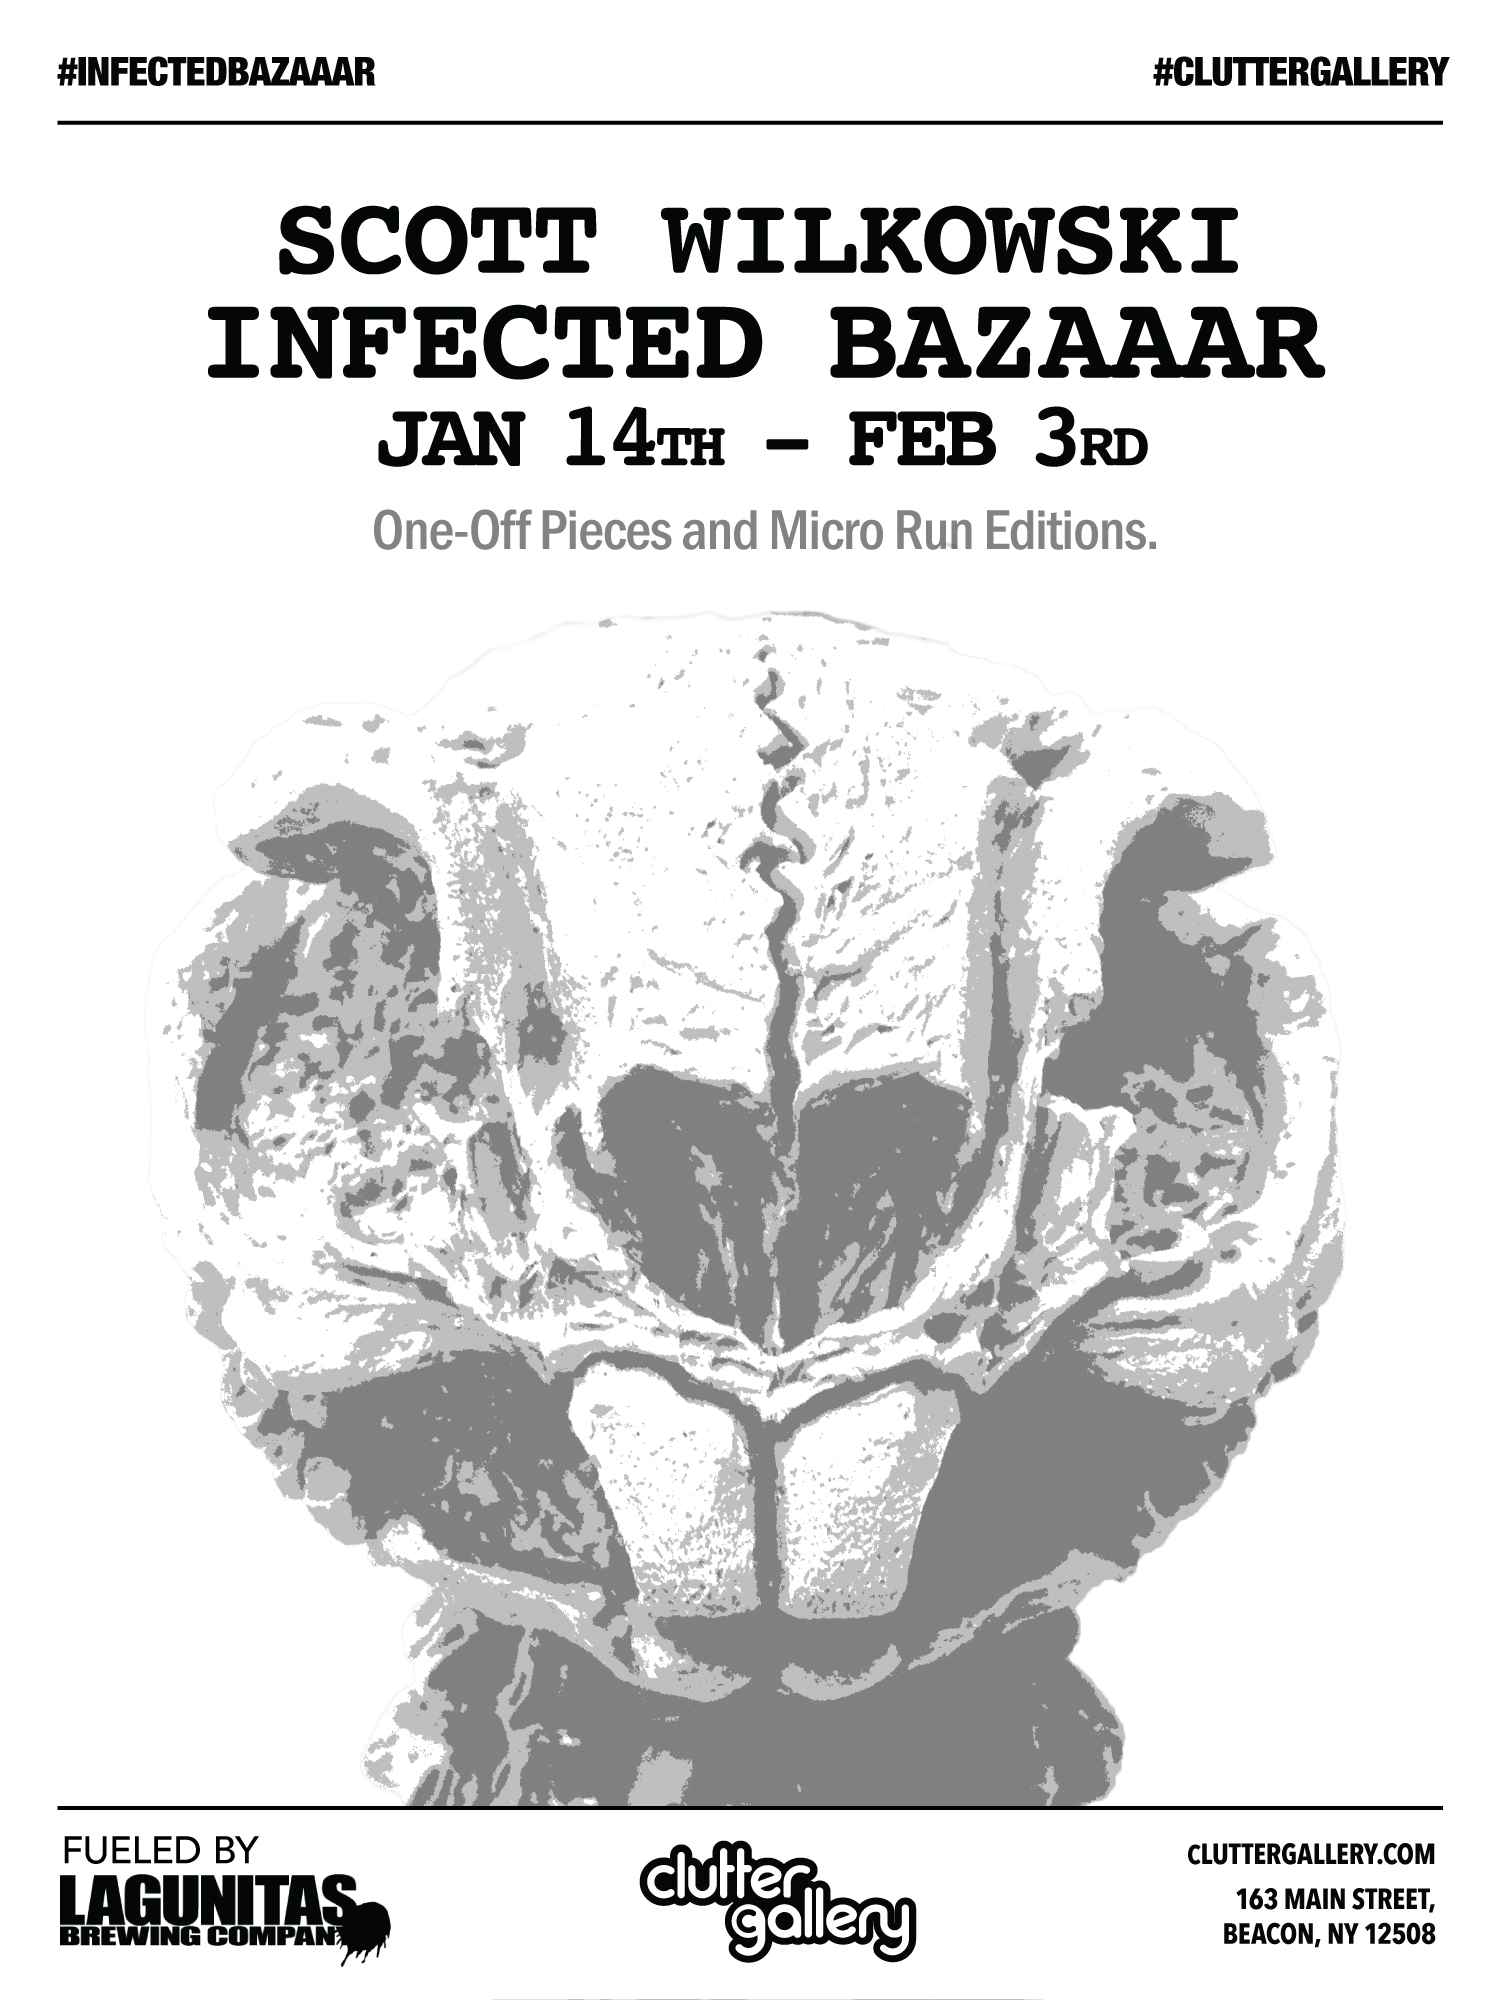 Infected Bazaaar